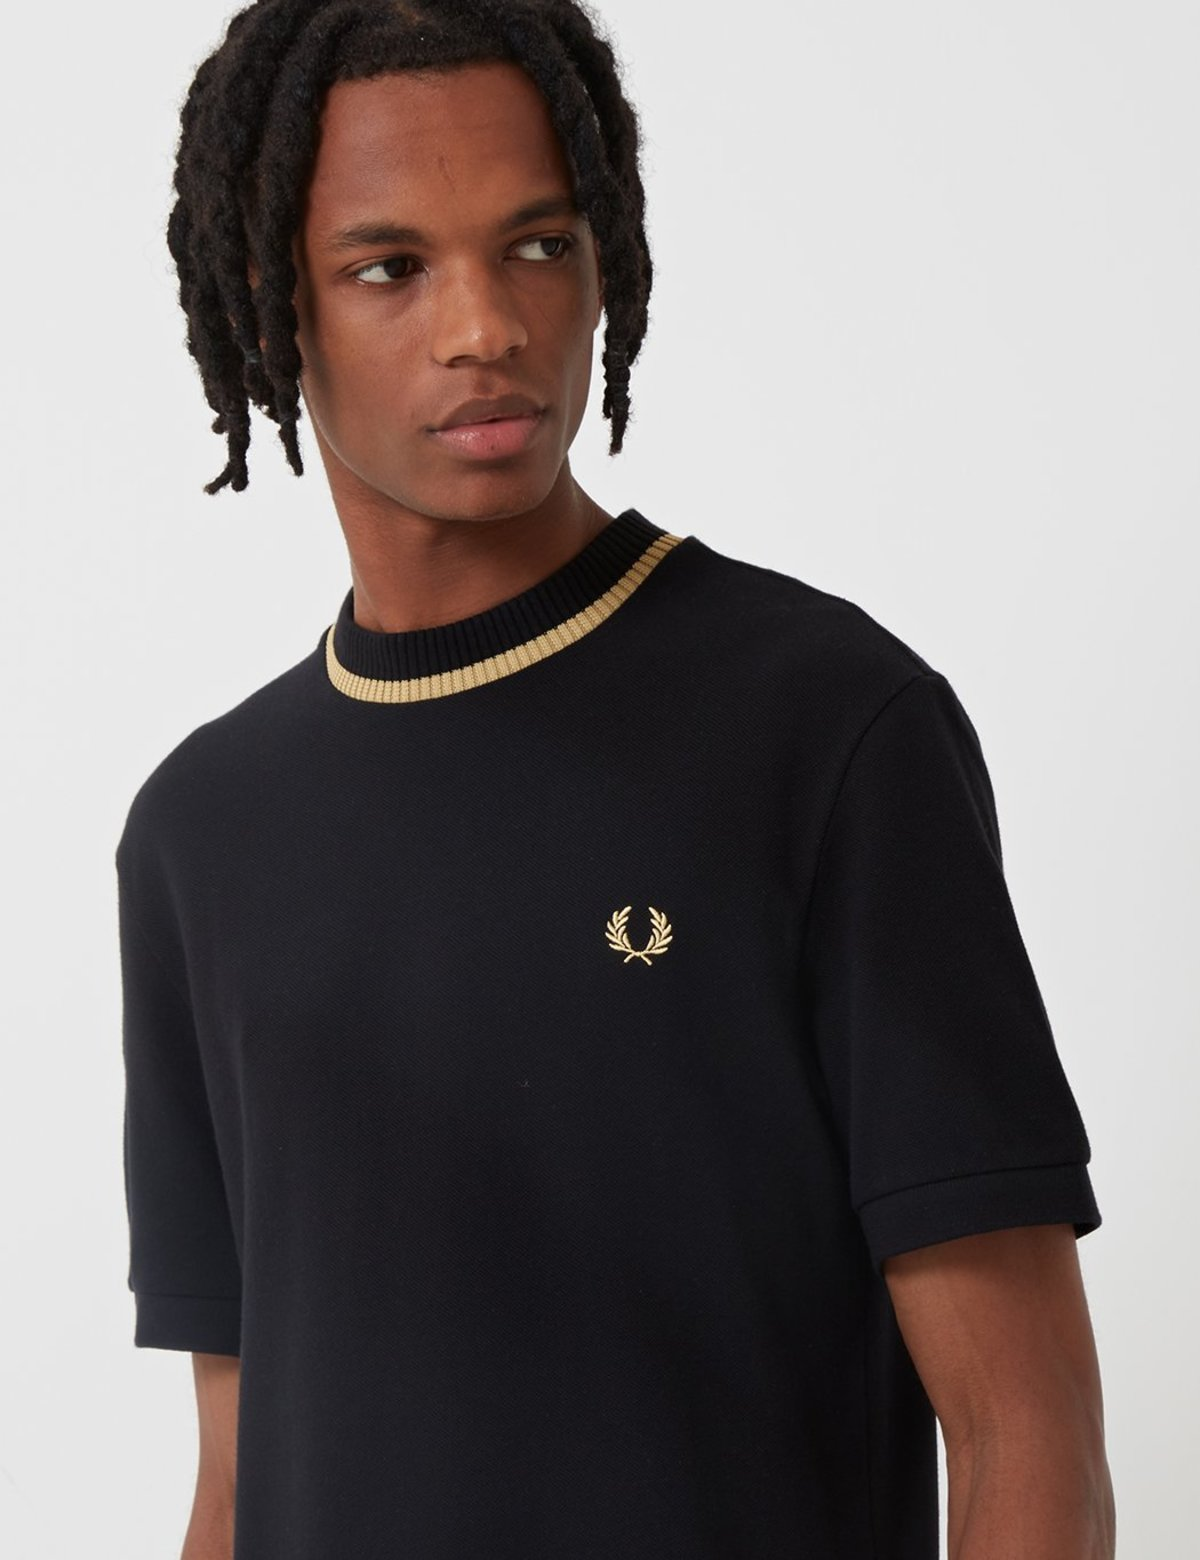 S//M//L//XL//XXL FRED PERRY MENS T-SHIRT ON SALE NEW POLOSHIRT COTOTN PIQUE SIZE